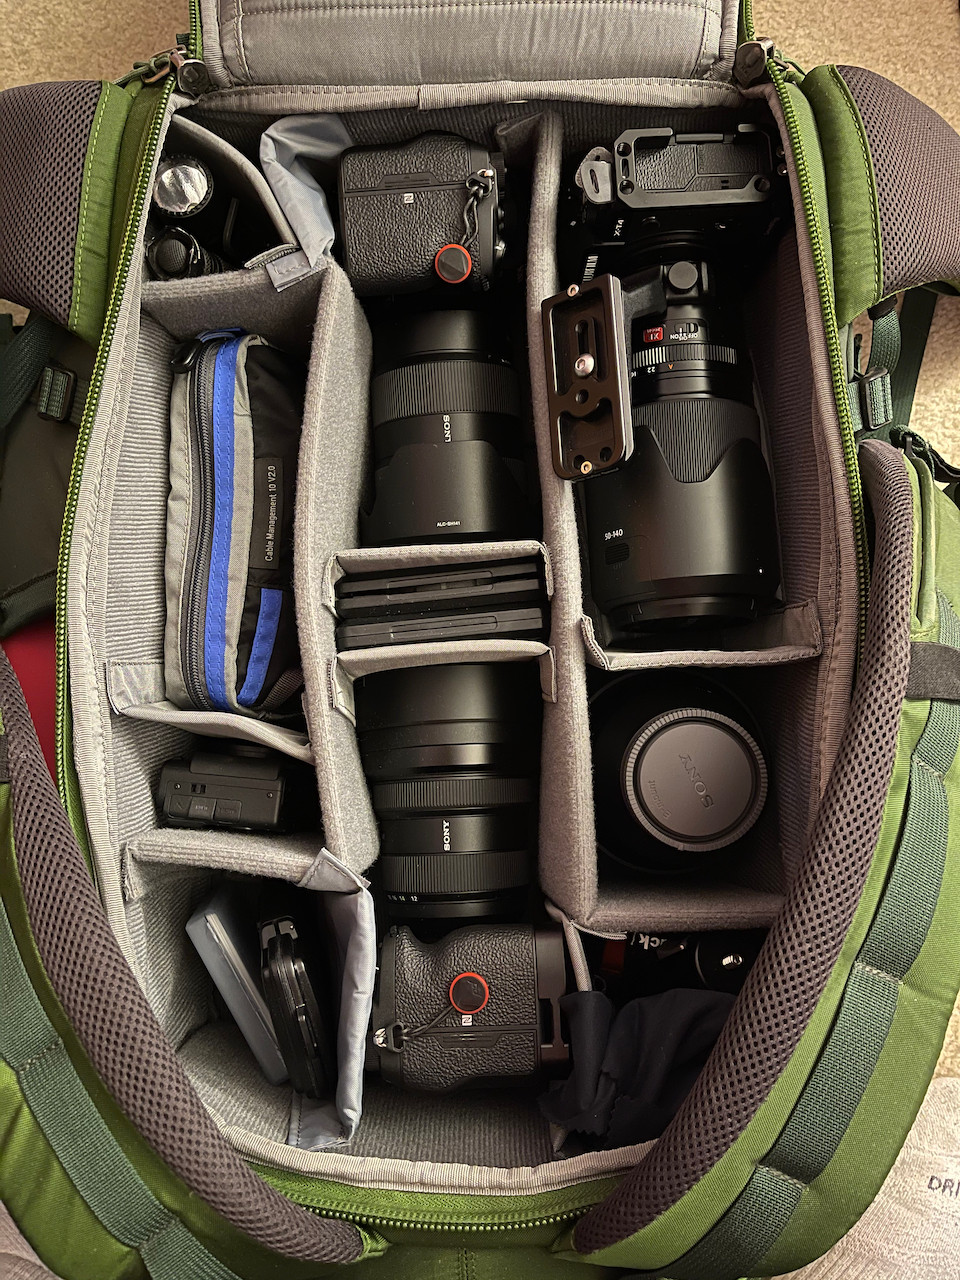 A green camera bag perfectly contains every last bit of gear needed for a professional photographer